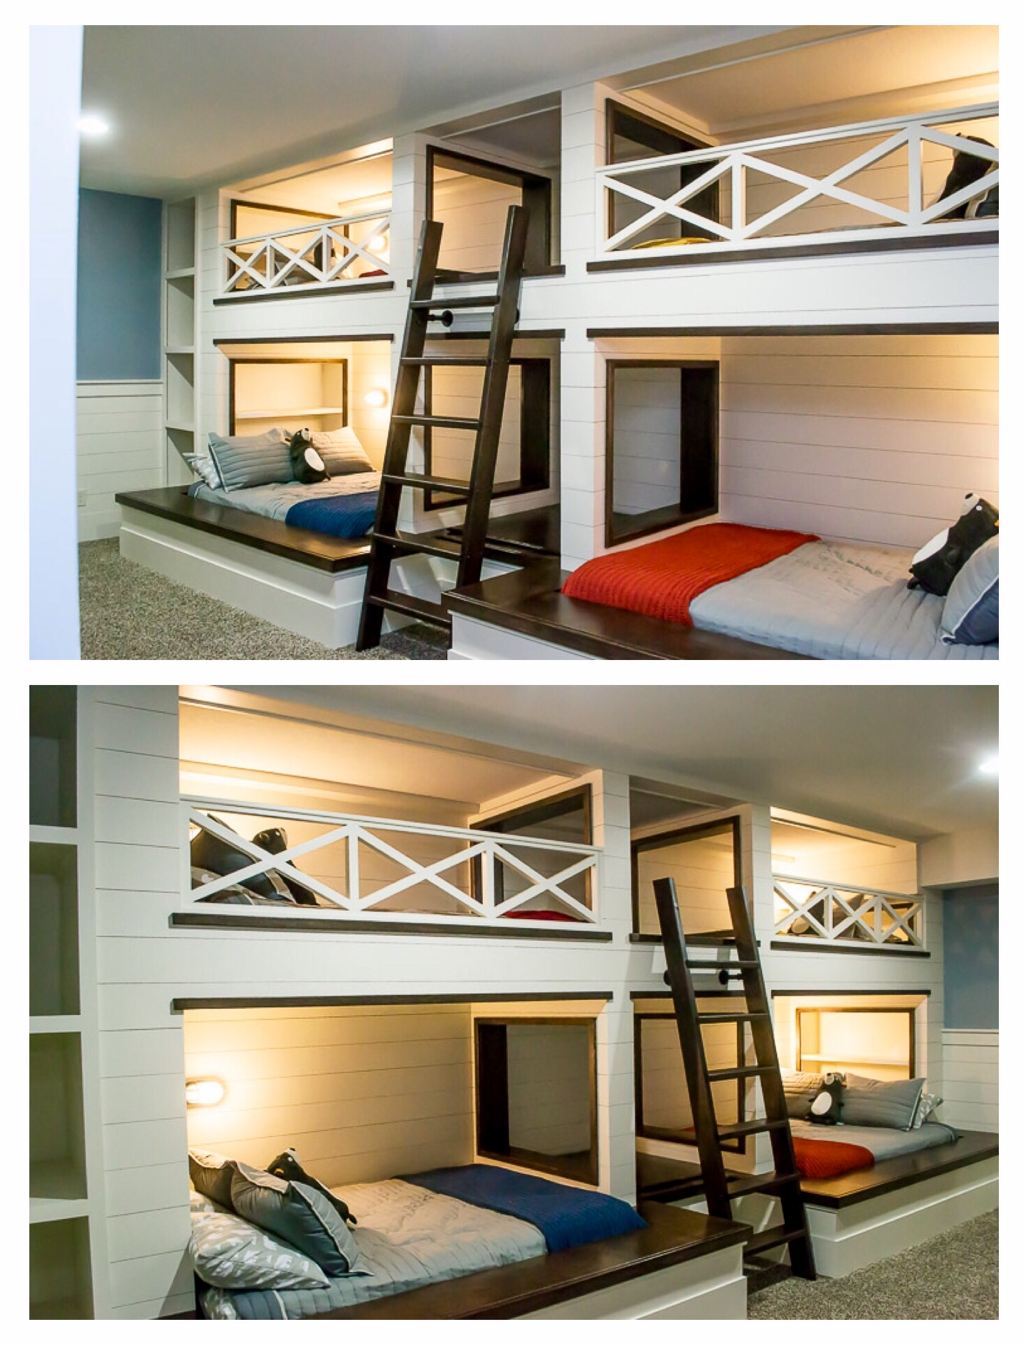 Custom Built Quadruple Bunk Bed With Shiplap Walls Contrasting Dark Stained Accents Bookcases Railing Custom Bunk Beds Lakehouse Bedroom Bunk Beds Built In